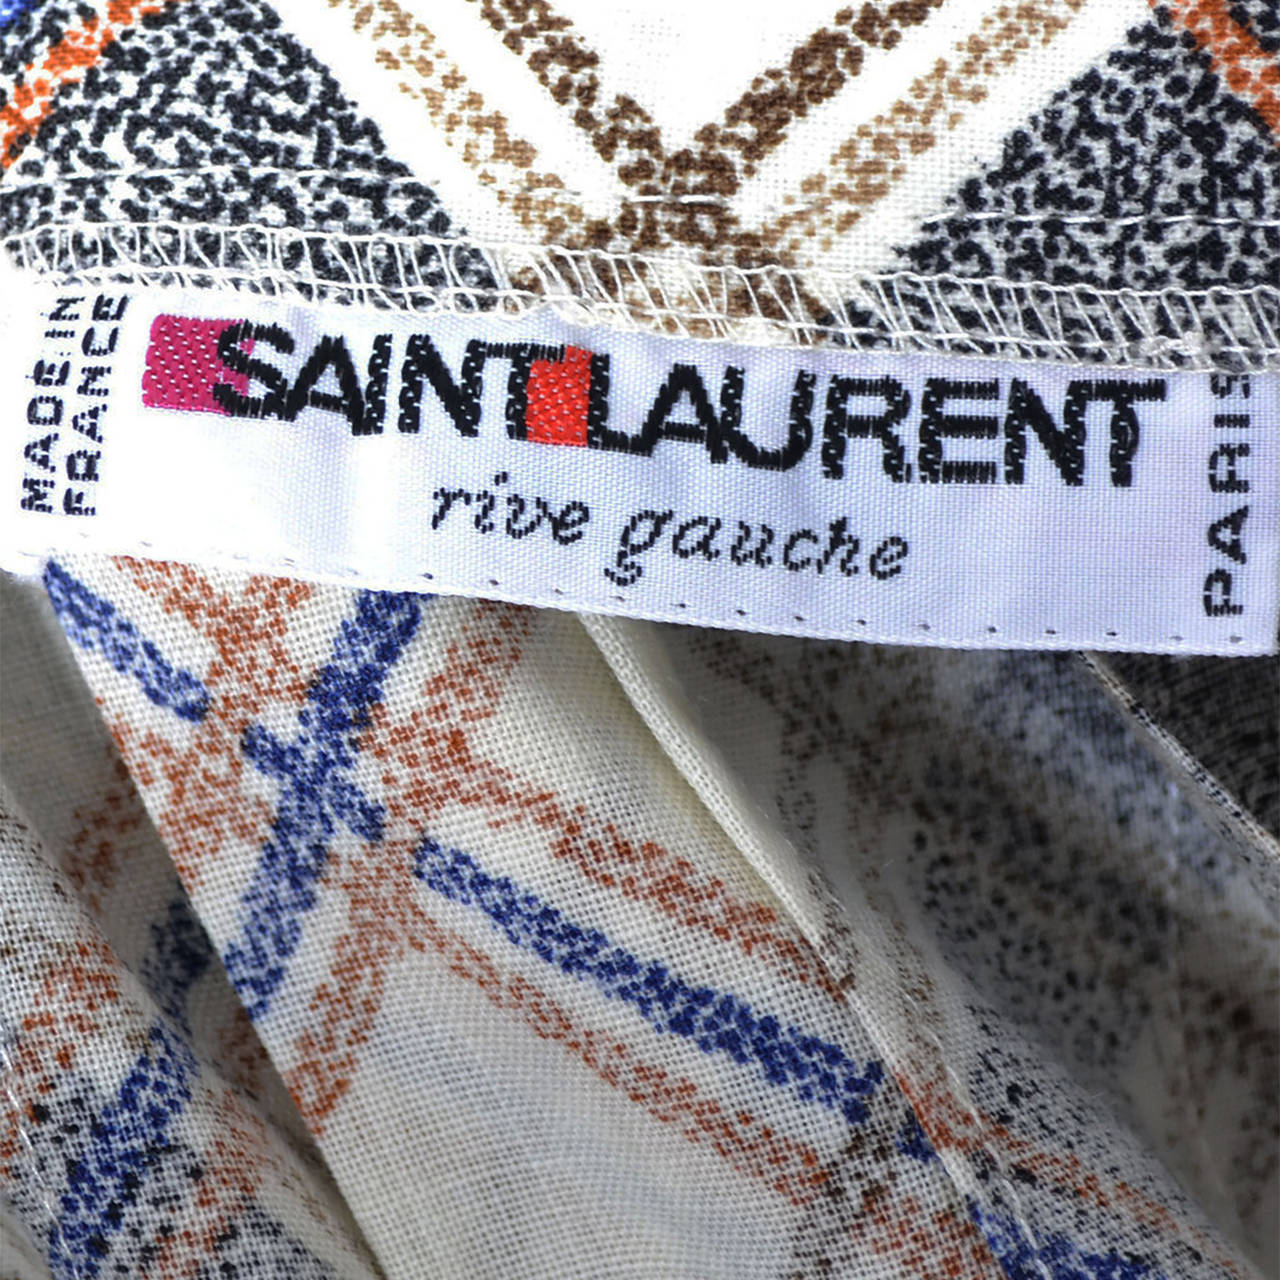 1970s YSL Vintage Yves Saint Laurent Rive Gauche 2 pc Dress Wrap Skirt & Blouse In Excellent Condition For Sale In Portland, OR